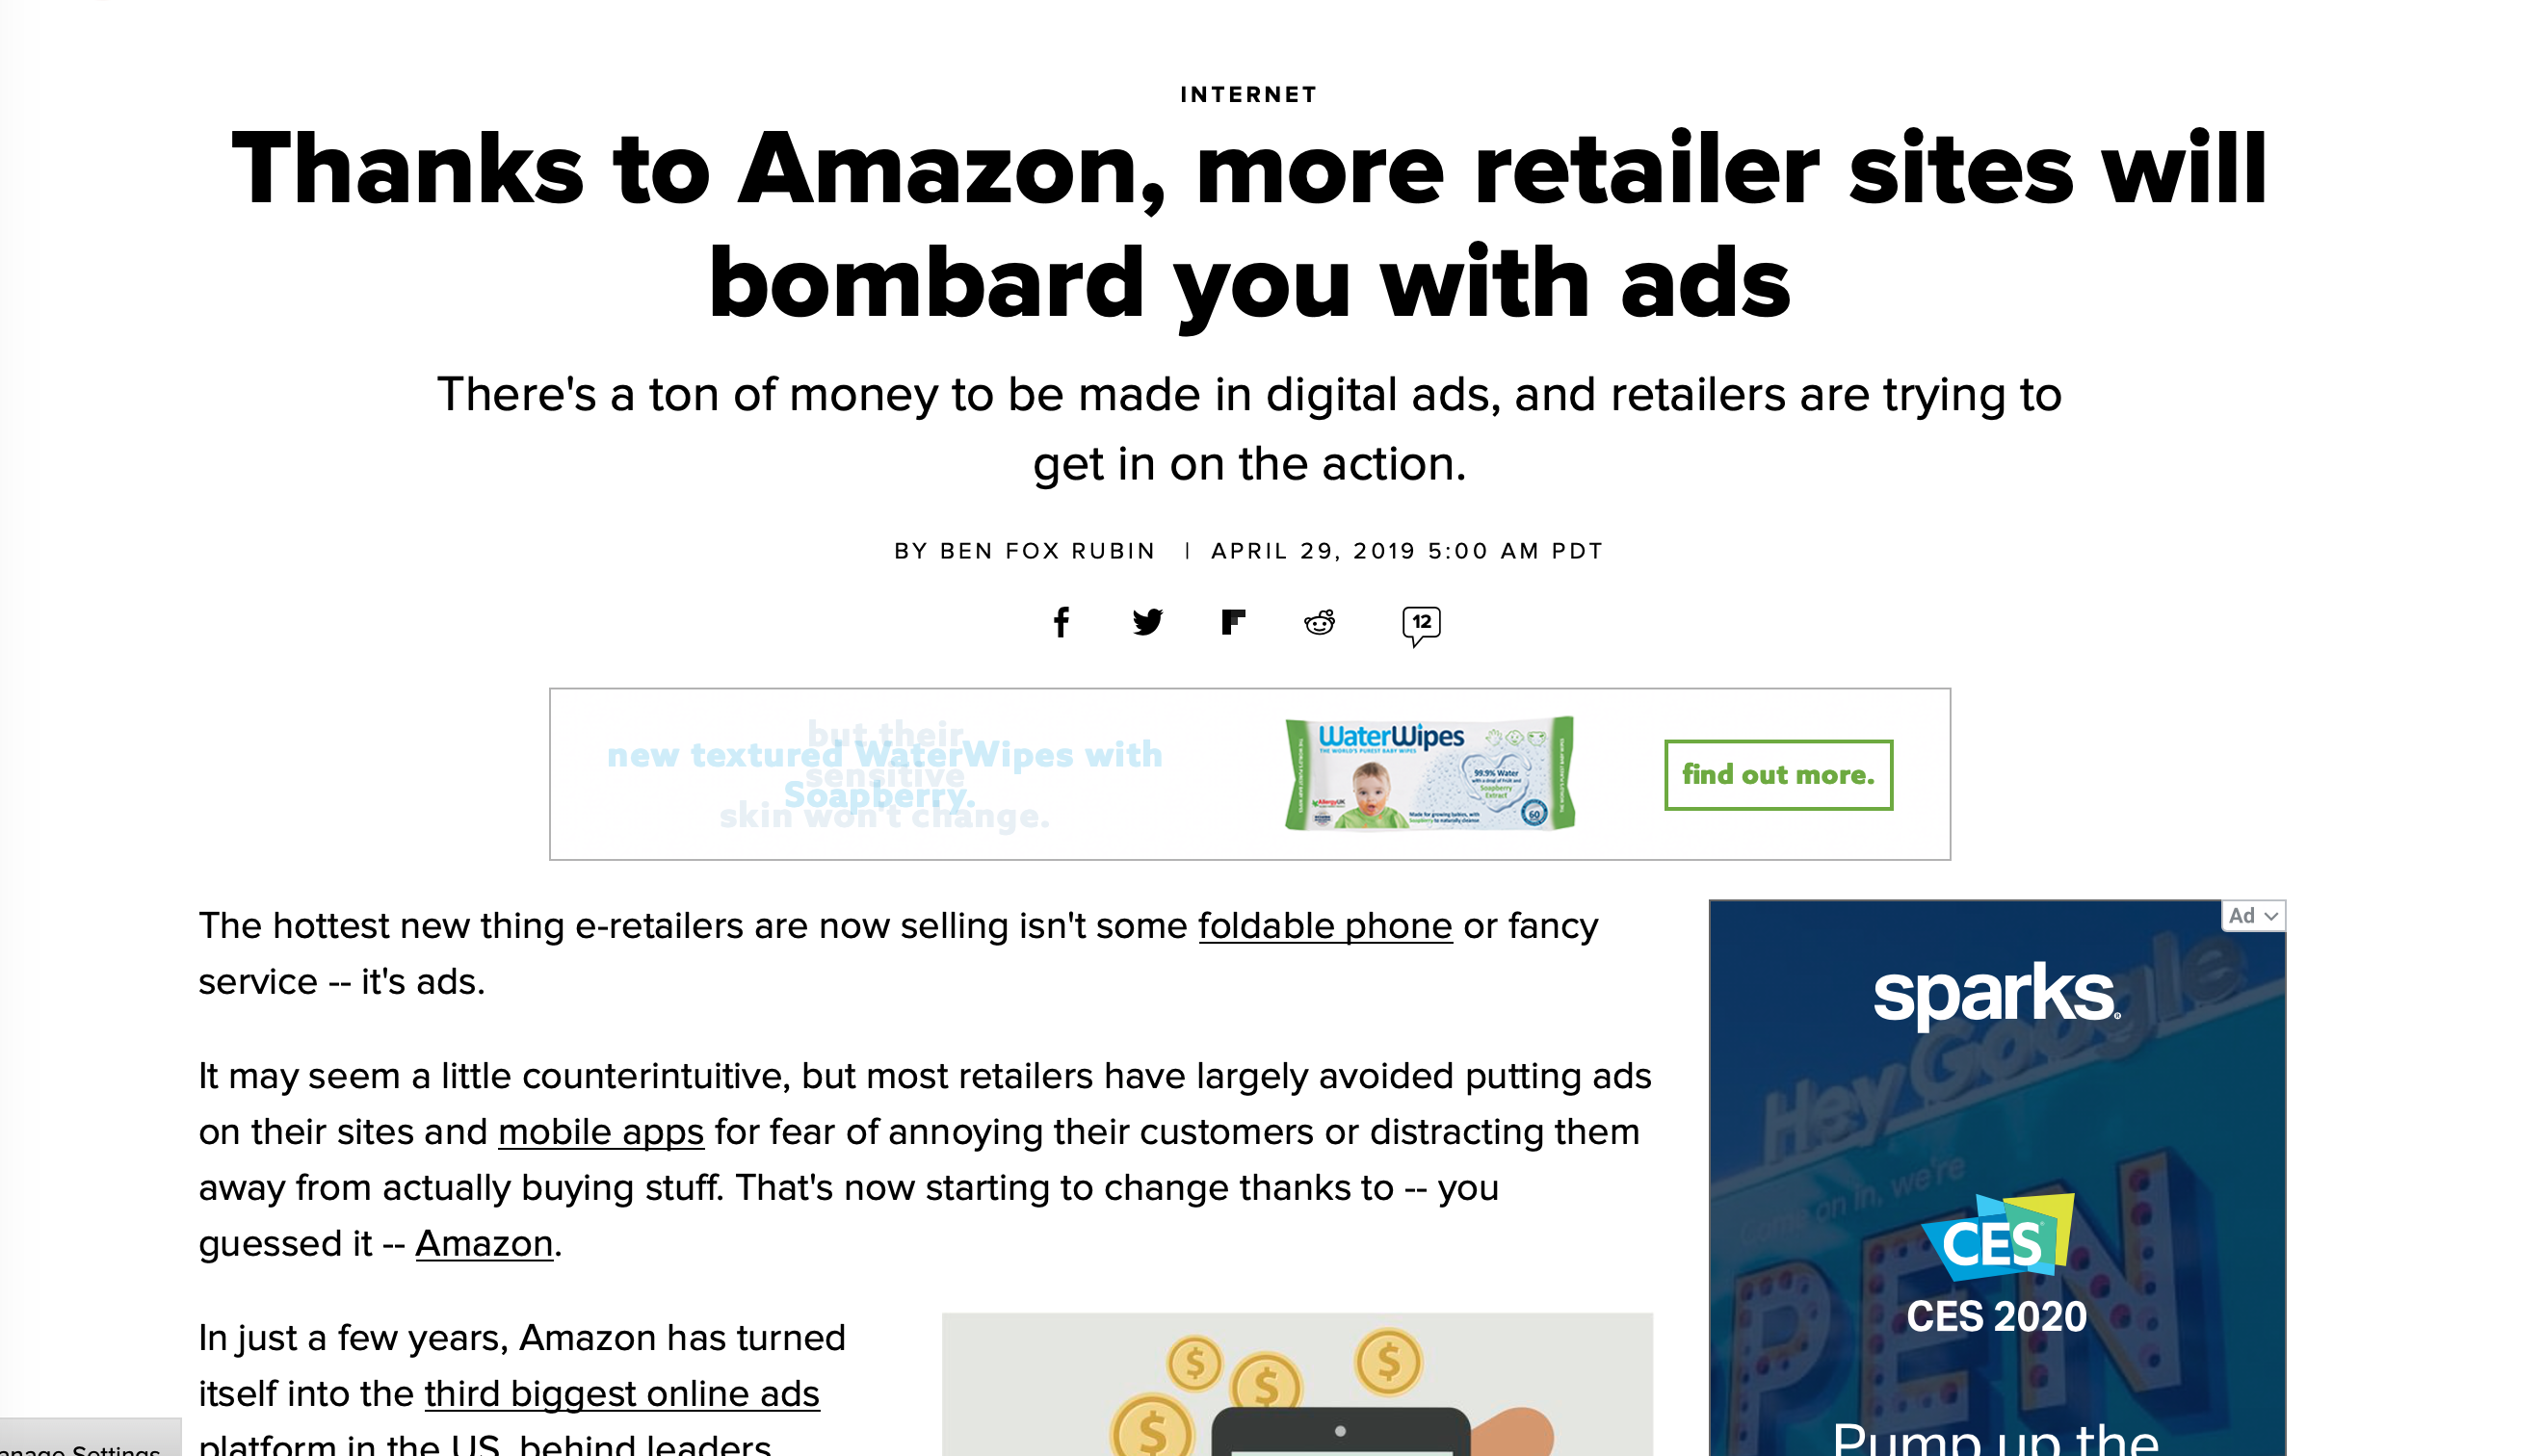 Ads on Amazon 2